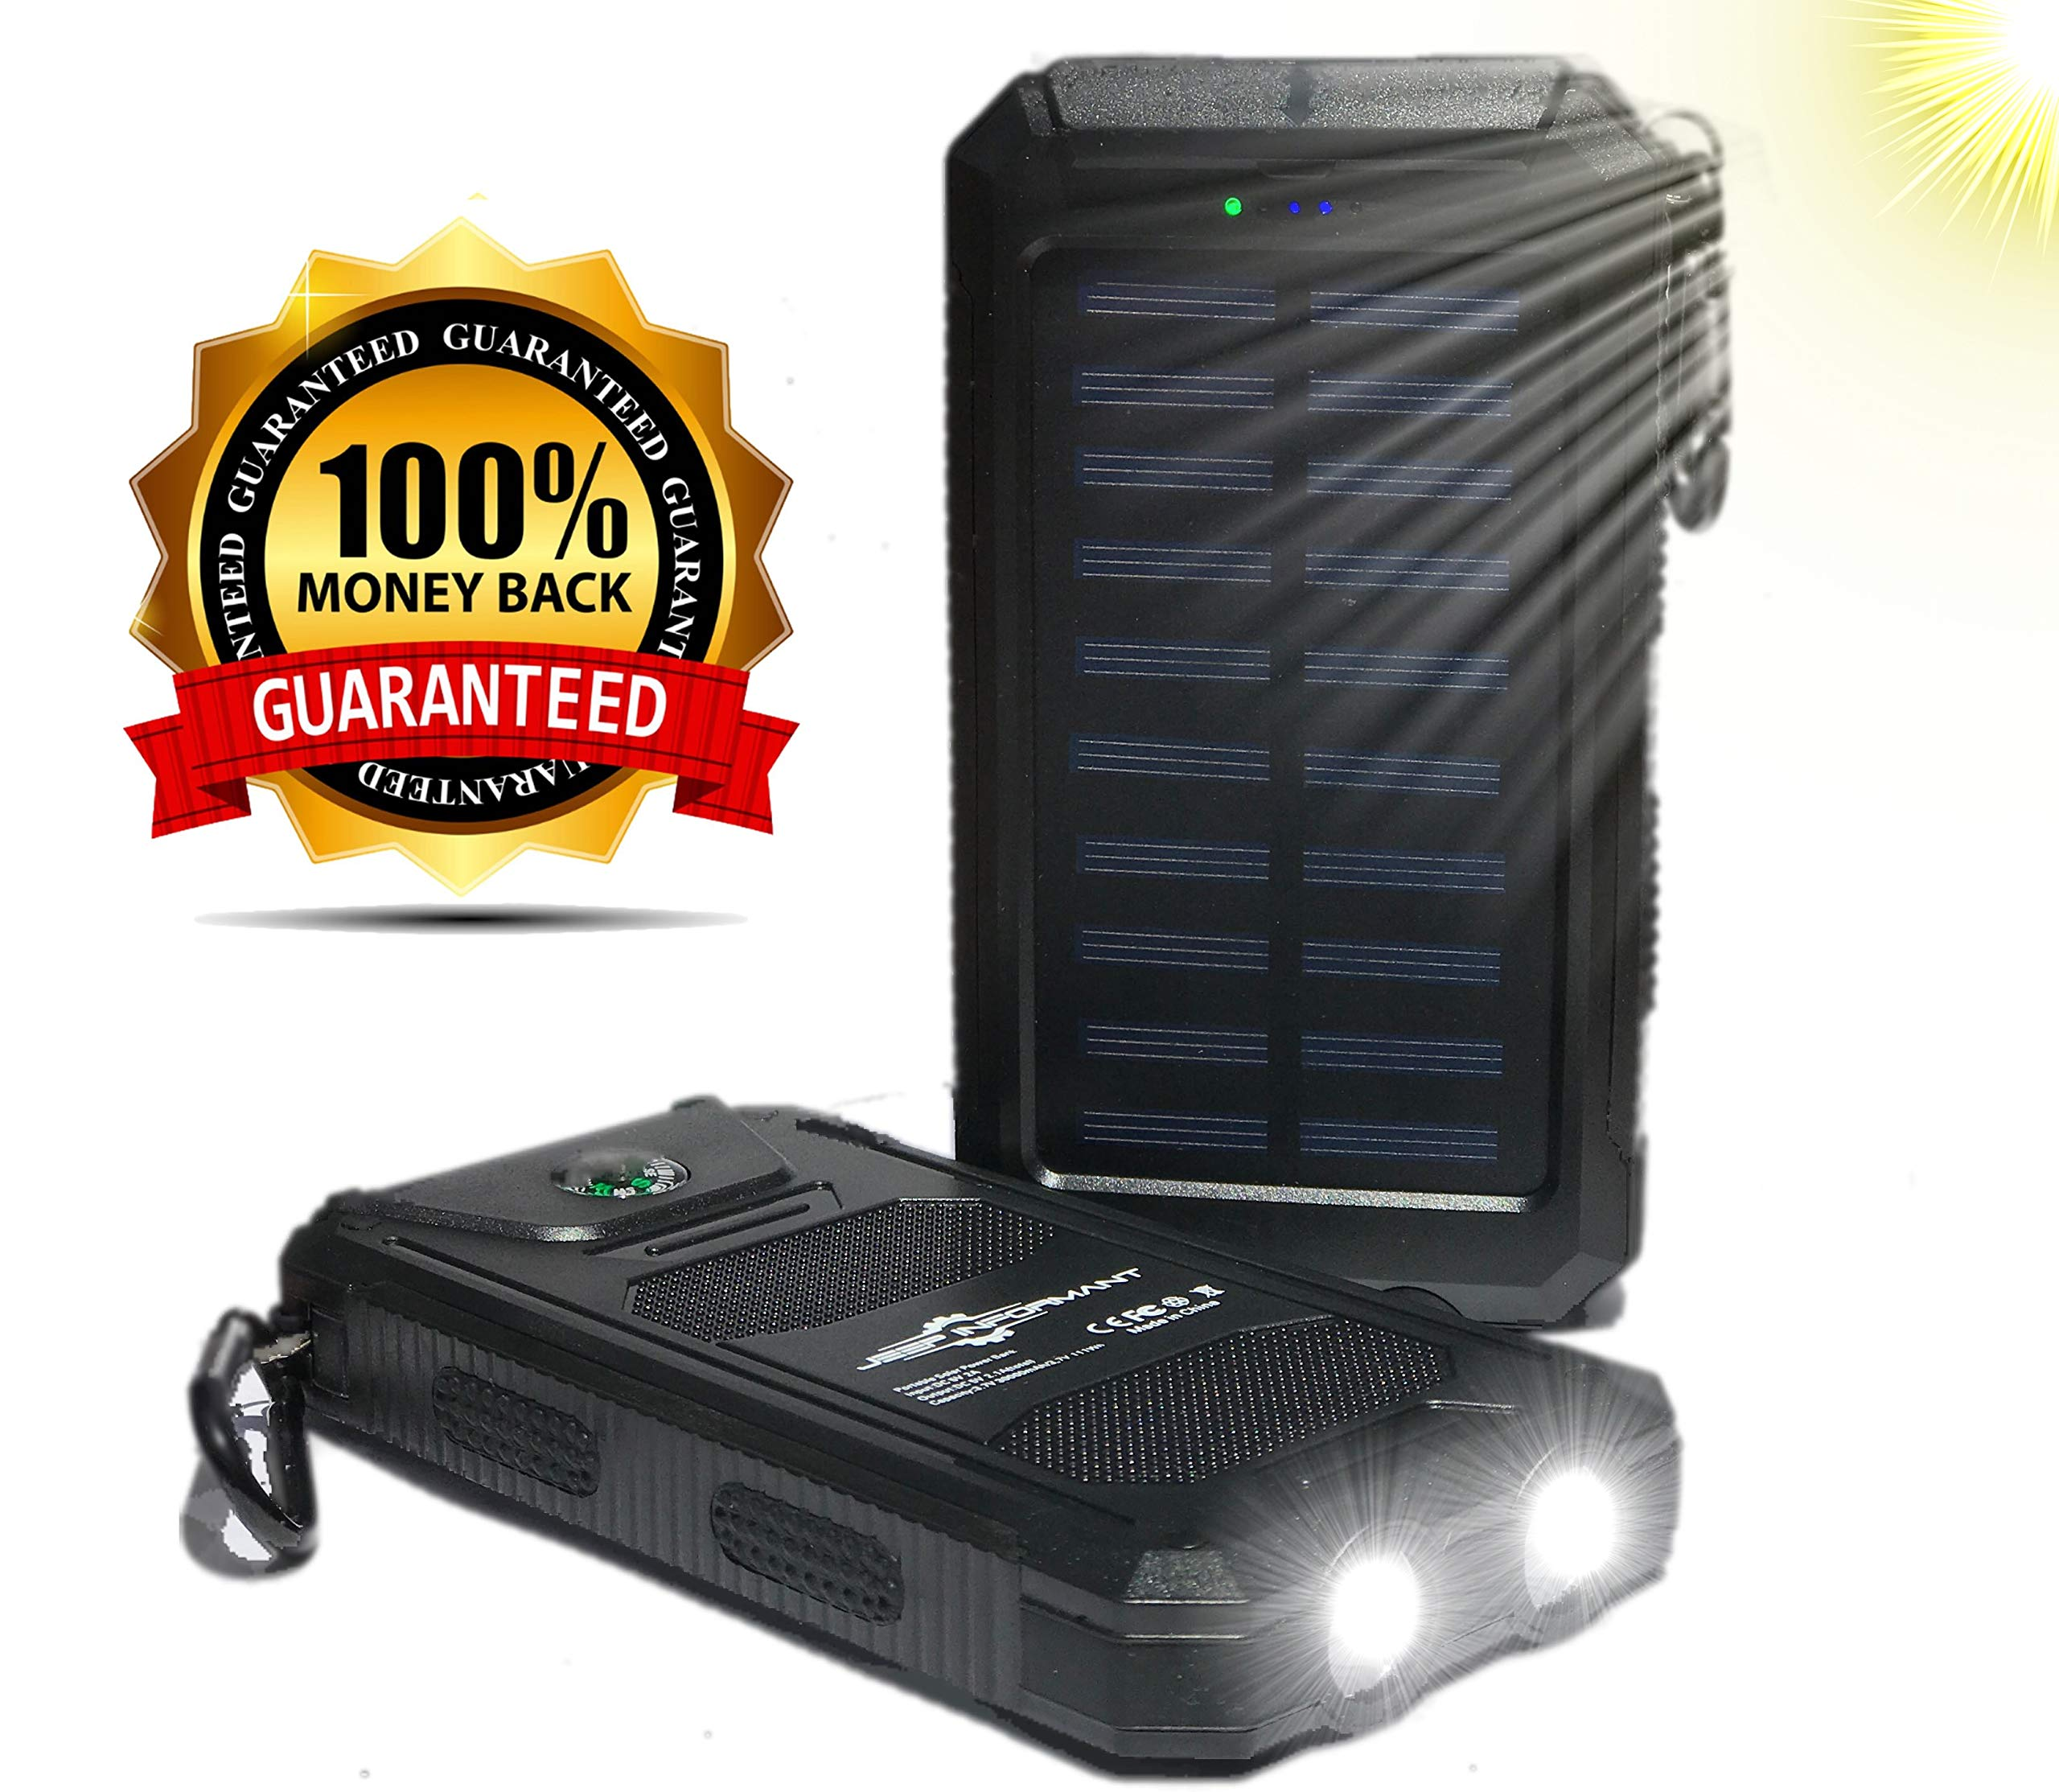 Solar Phone Charger 30000mAh with 2 LED Flashlight Portable Battery Pack (Power Bank), 2 USB Ports and Compass Great for Camping Traveling or Emergency Backup